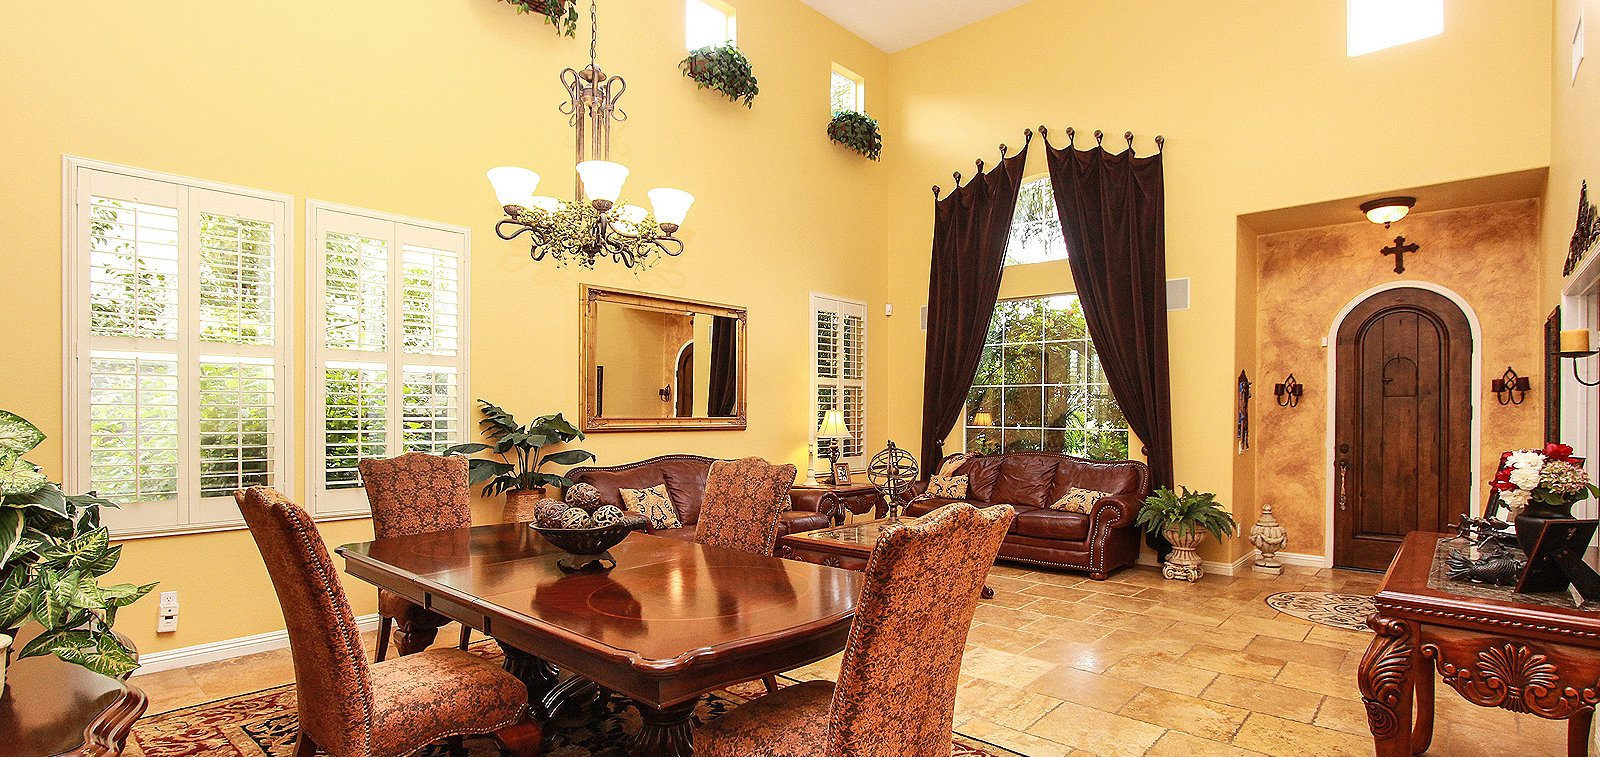 THE HENSLEY GROUP REAL ESTATE - well lit dining and living room w/ high ceiling and chandelier